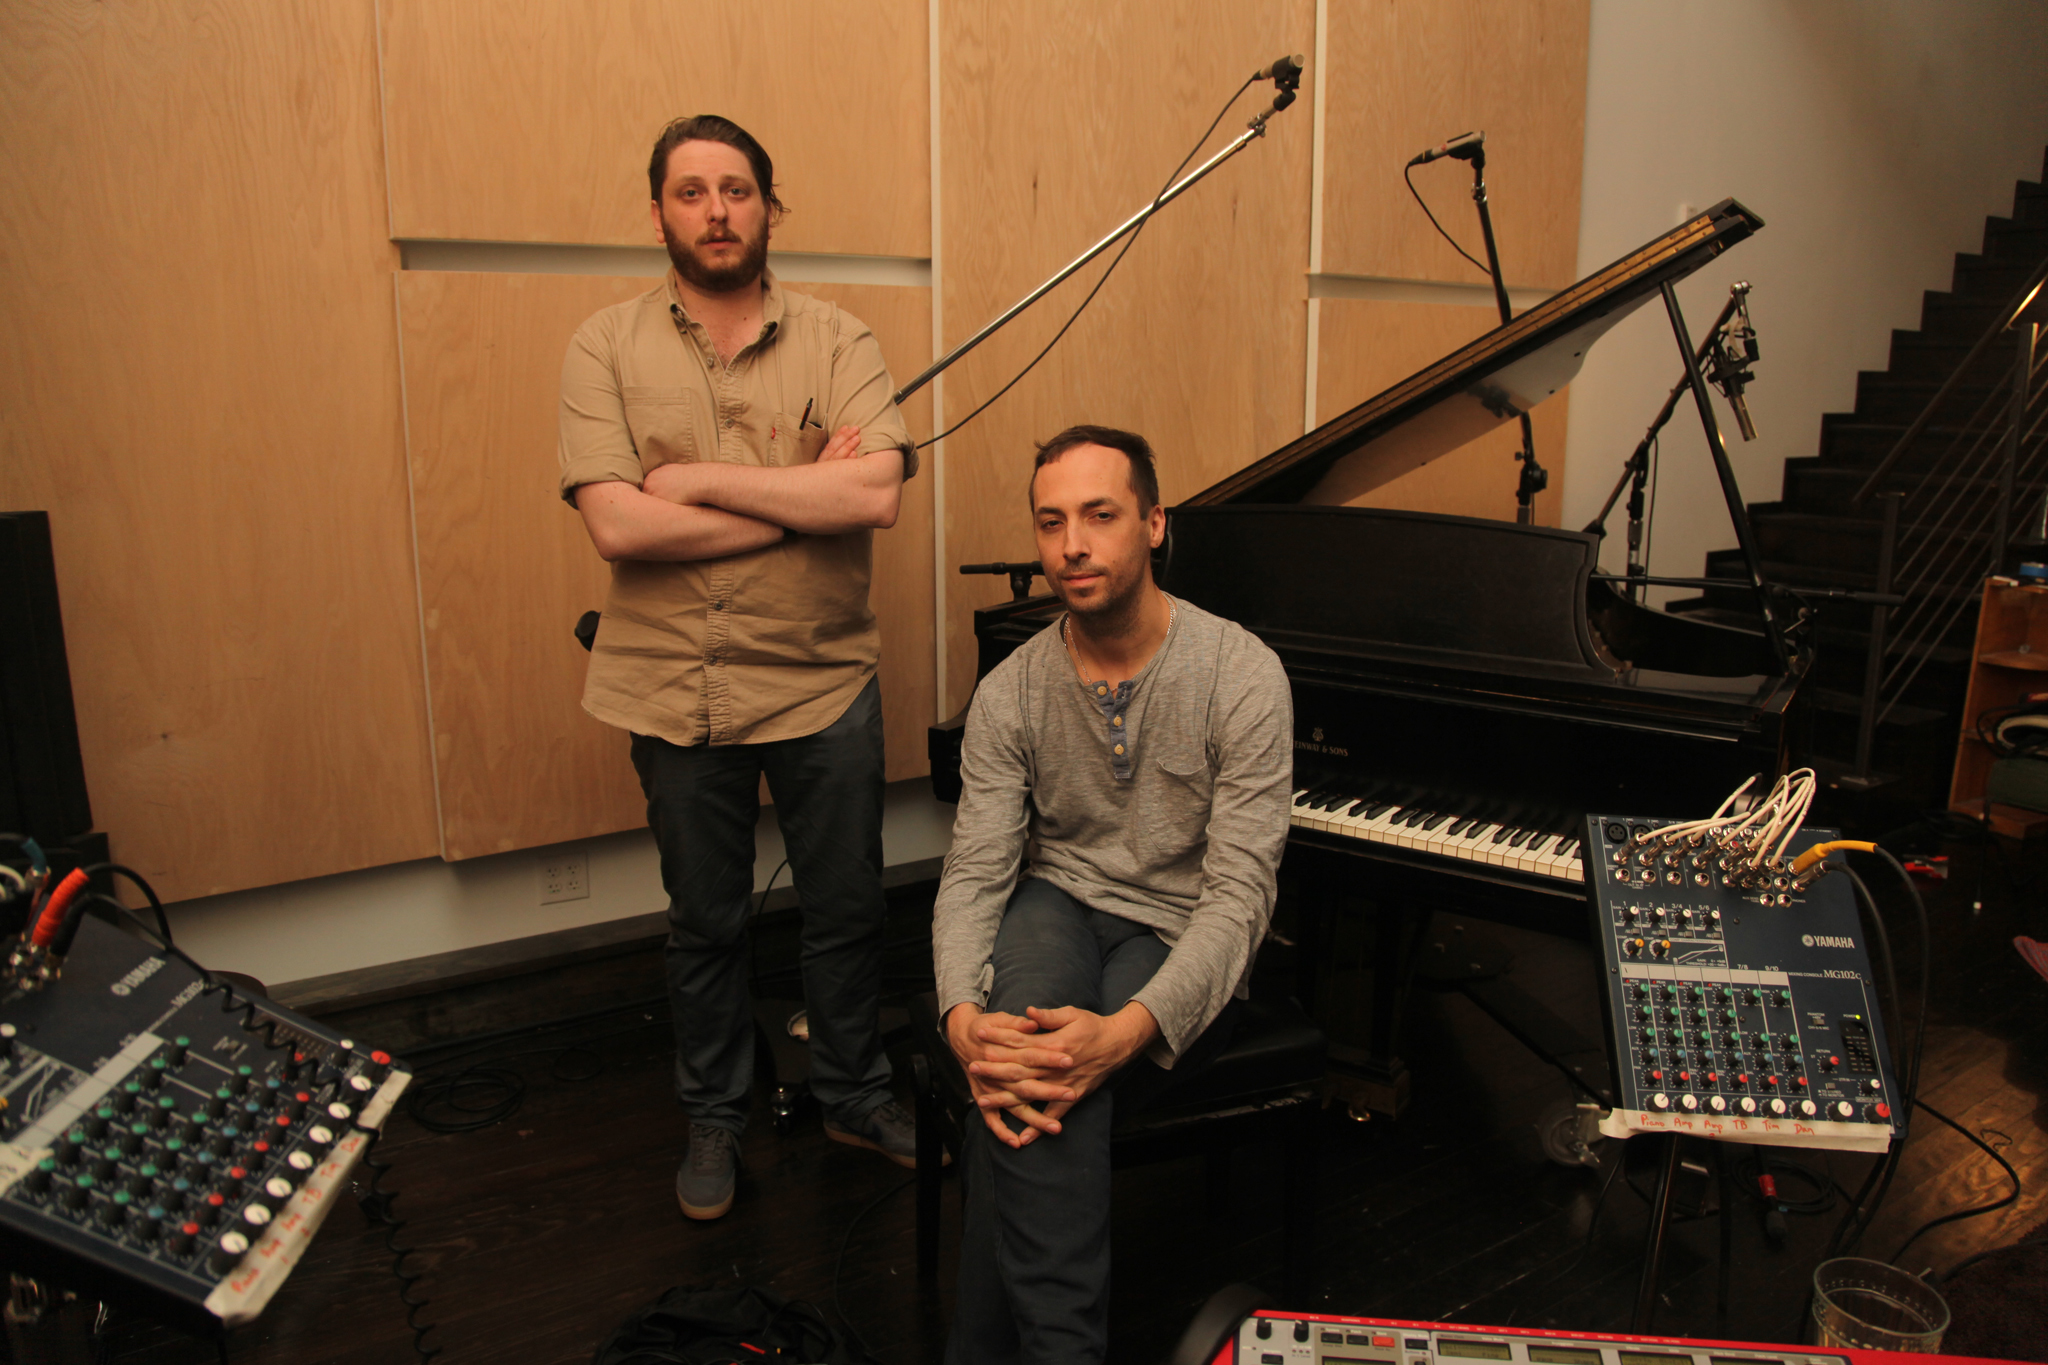 Daniel Lopatin, left, and Tim Hecker